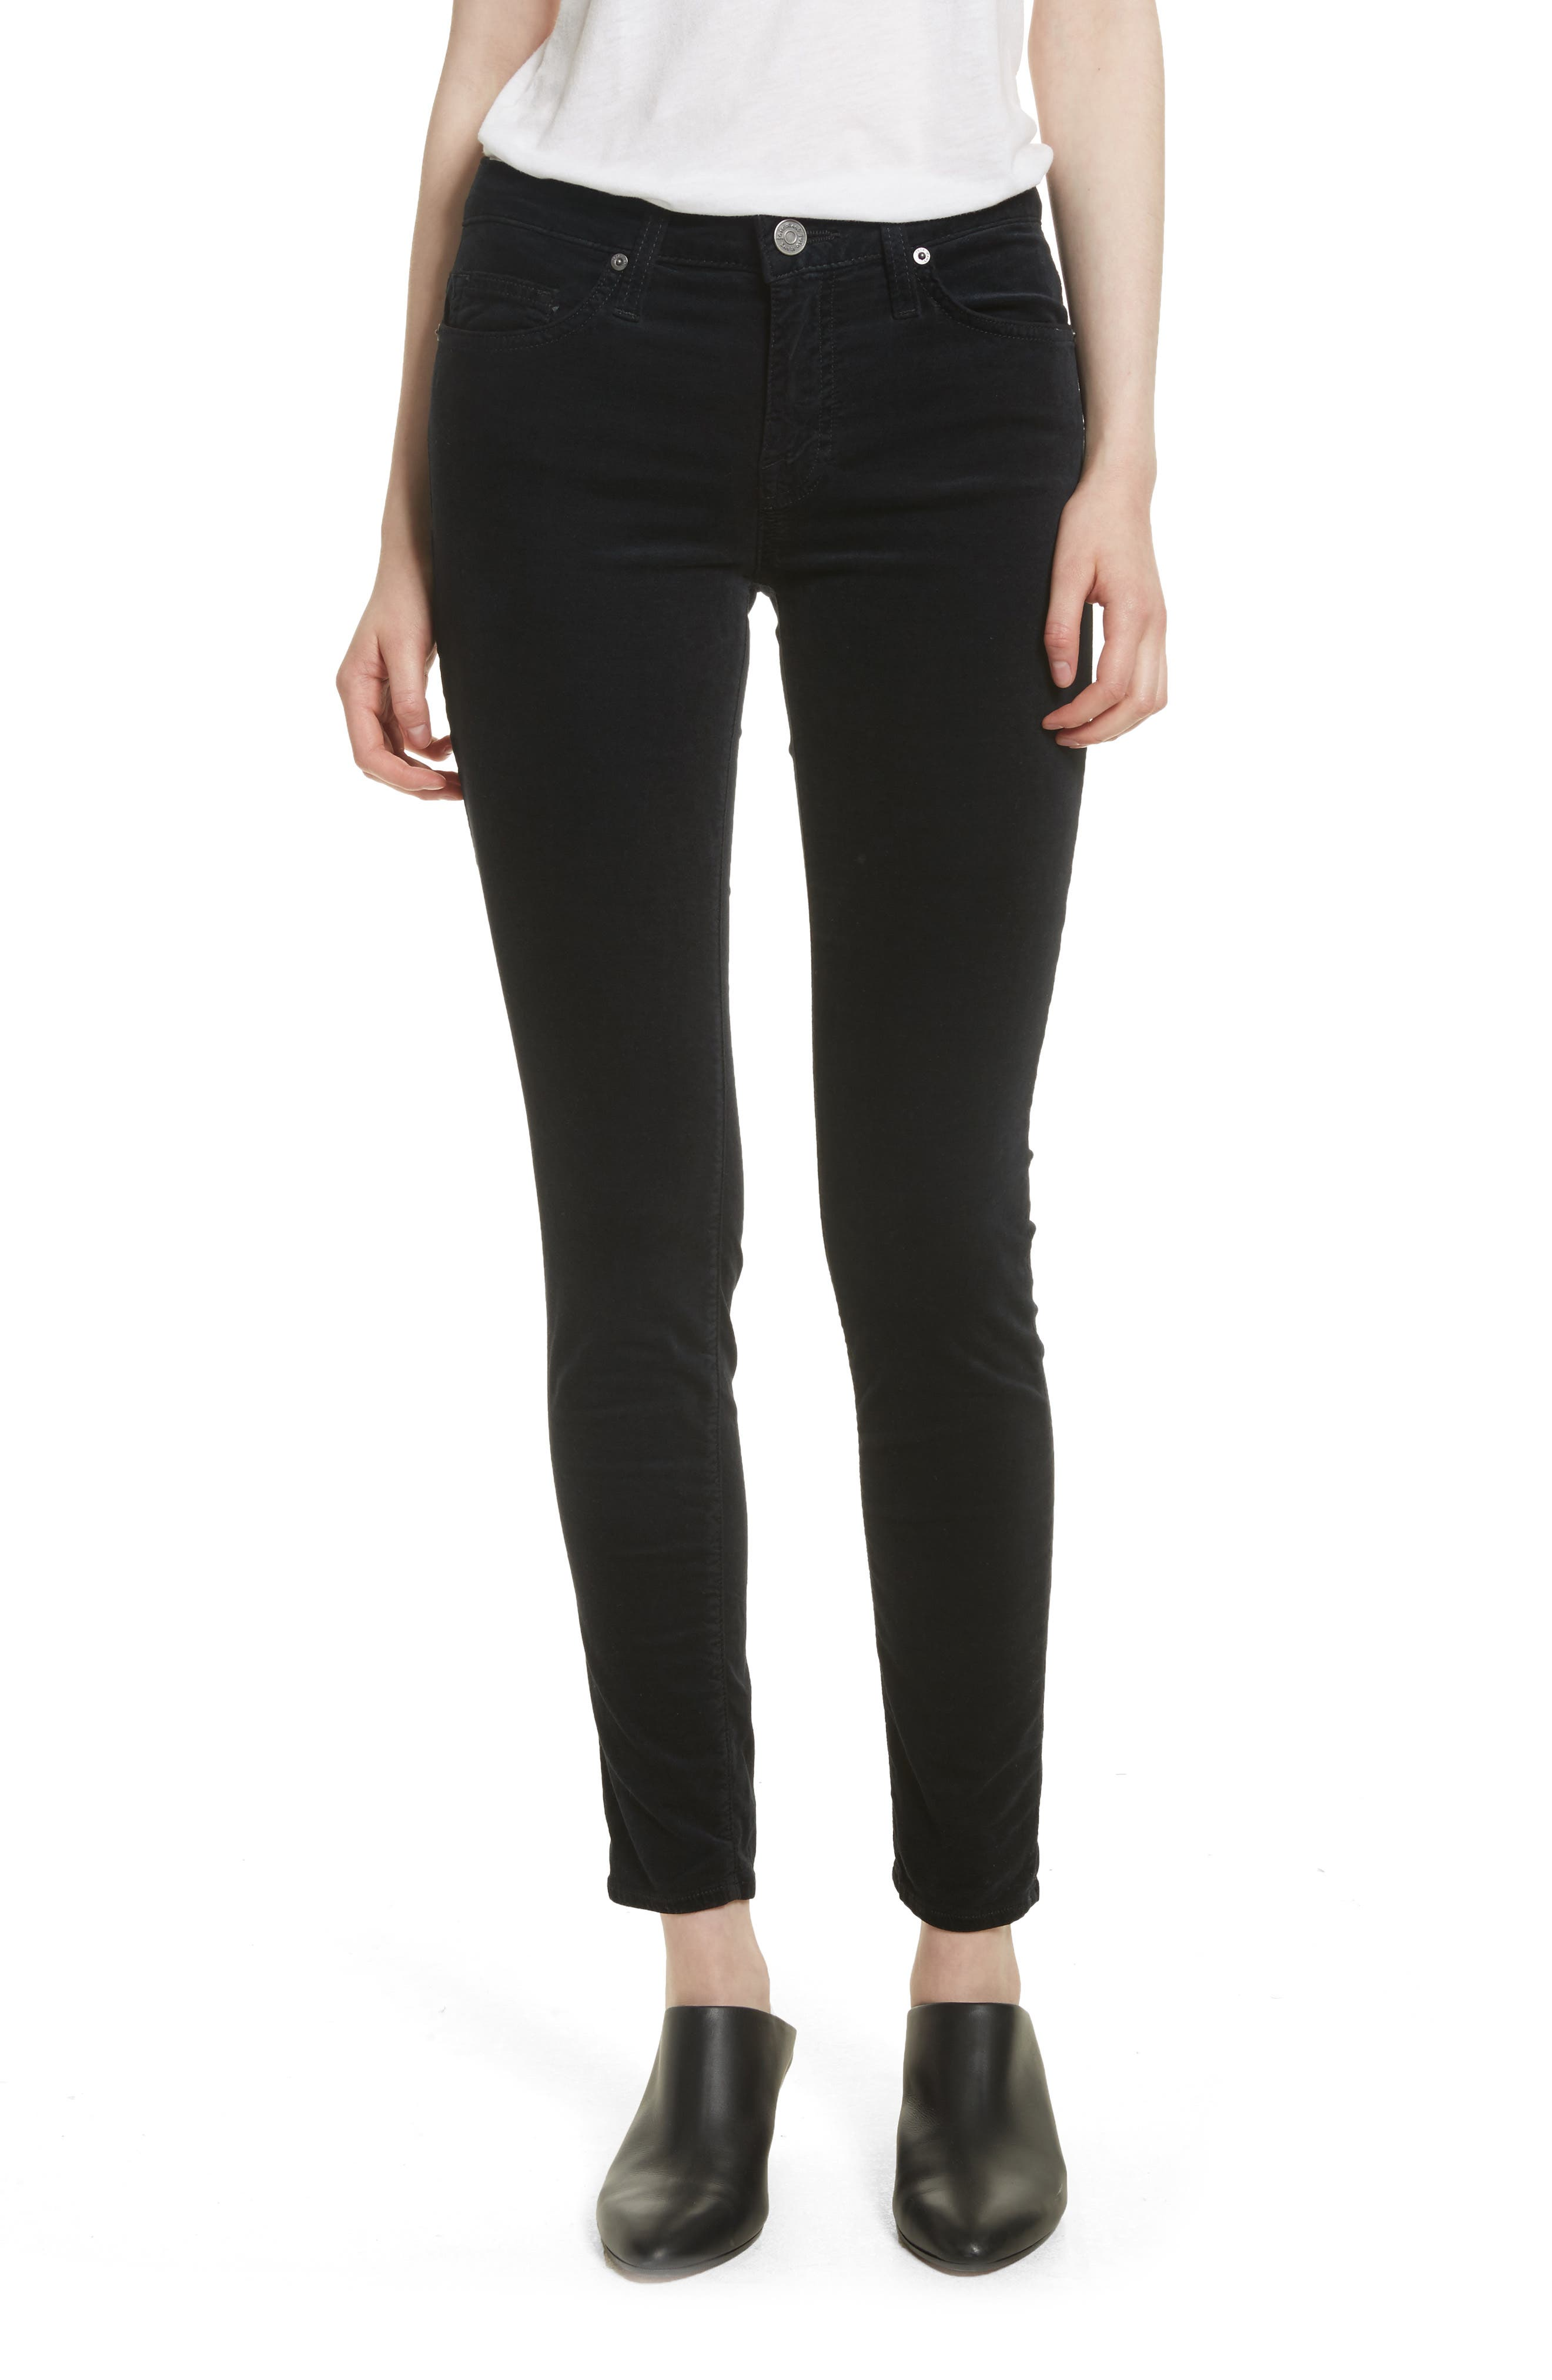 Main Image - Joie Mid-Rise Skinny Jeans (Caviar)